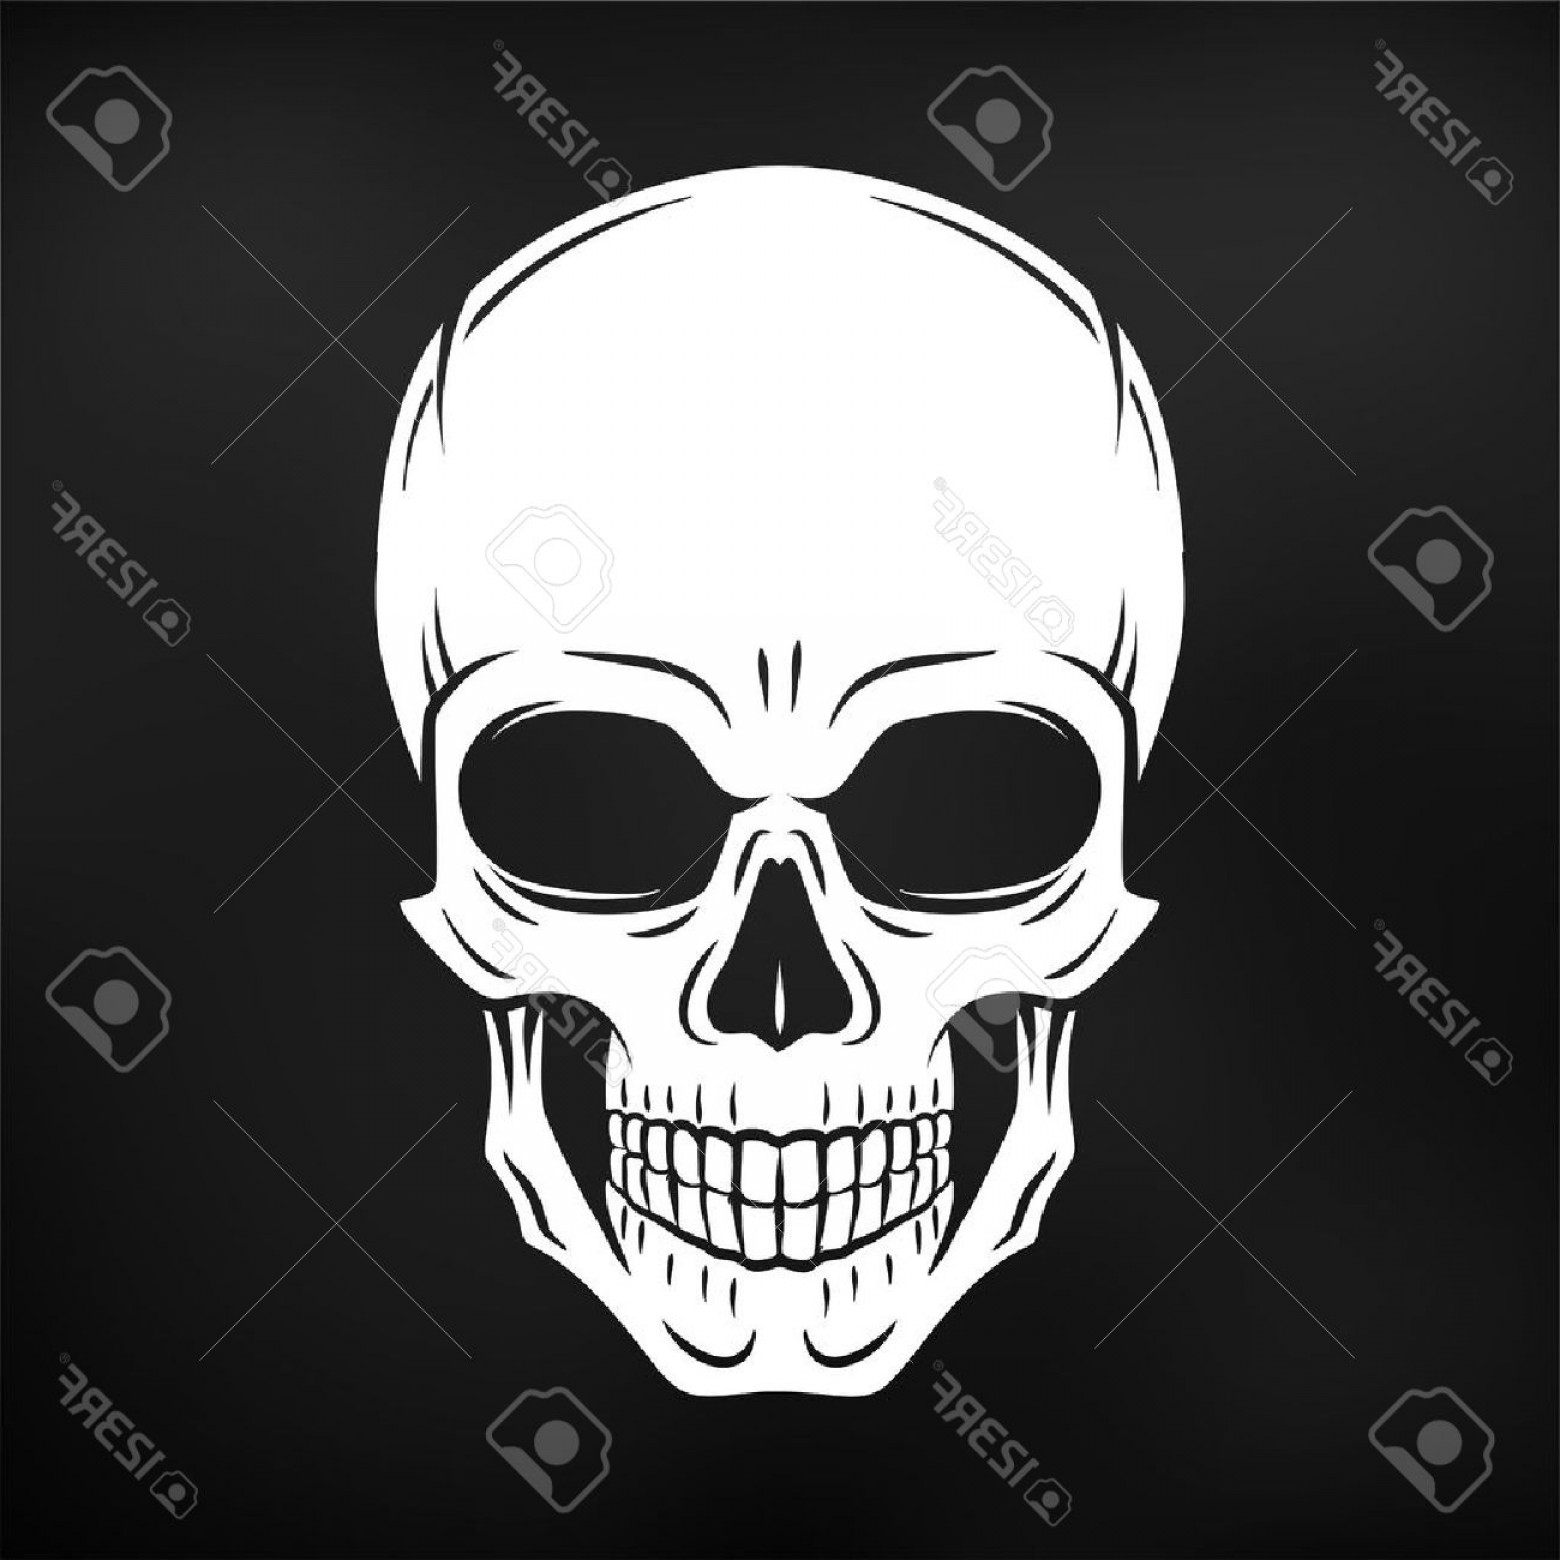 Skull Vector T-shirt Illustration: Photostock Vector Human Evil Skull Vector Jolly Roger Logo Template Death T Shirt Design Pirate Insignia Concept Poiso